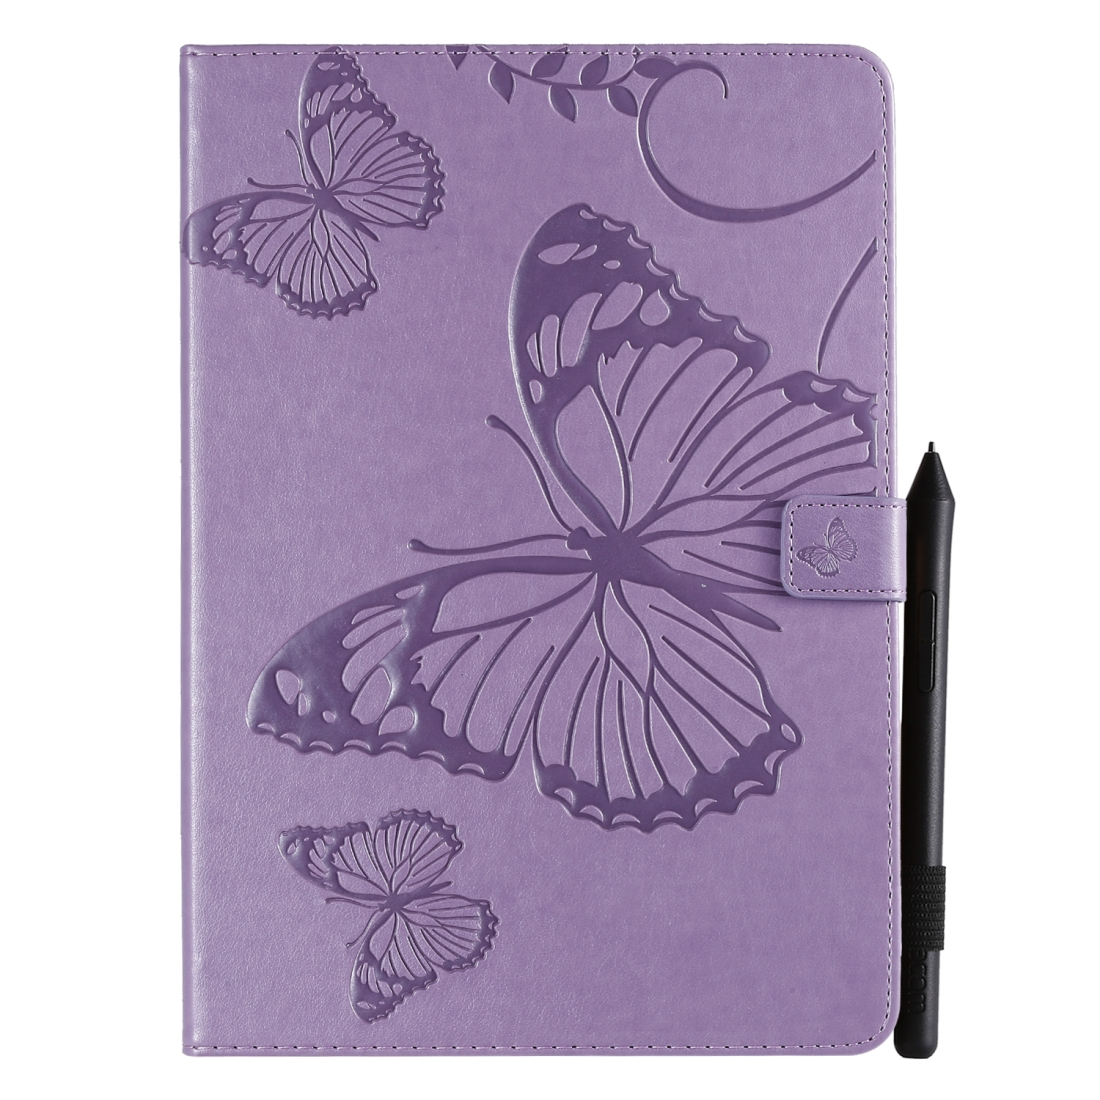 iPad 7th Generation Case (10.2 Inch) Also Fits /Pro 10.5/Air 2019 Leather Butterfly Design (Purple)